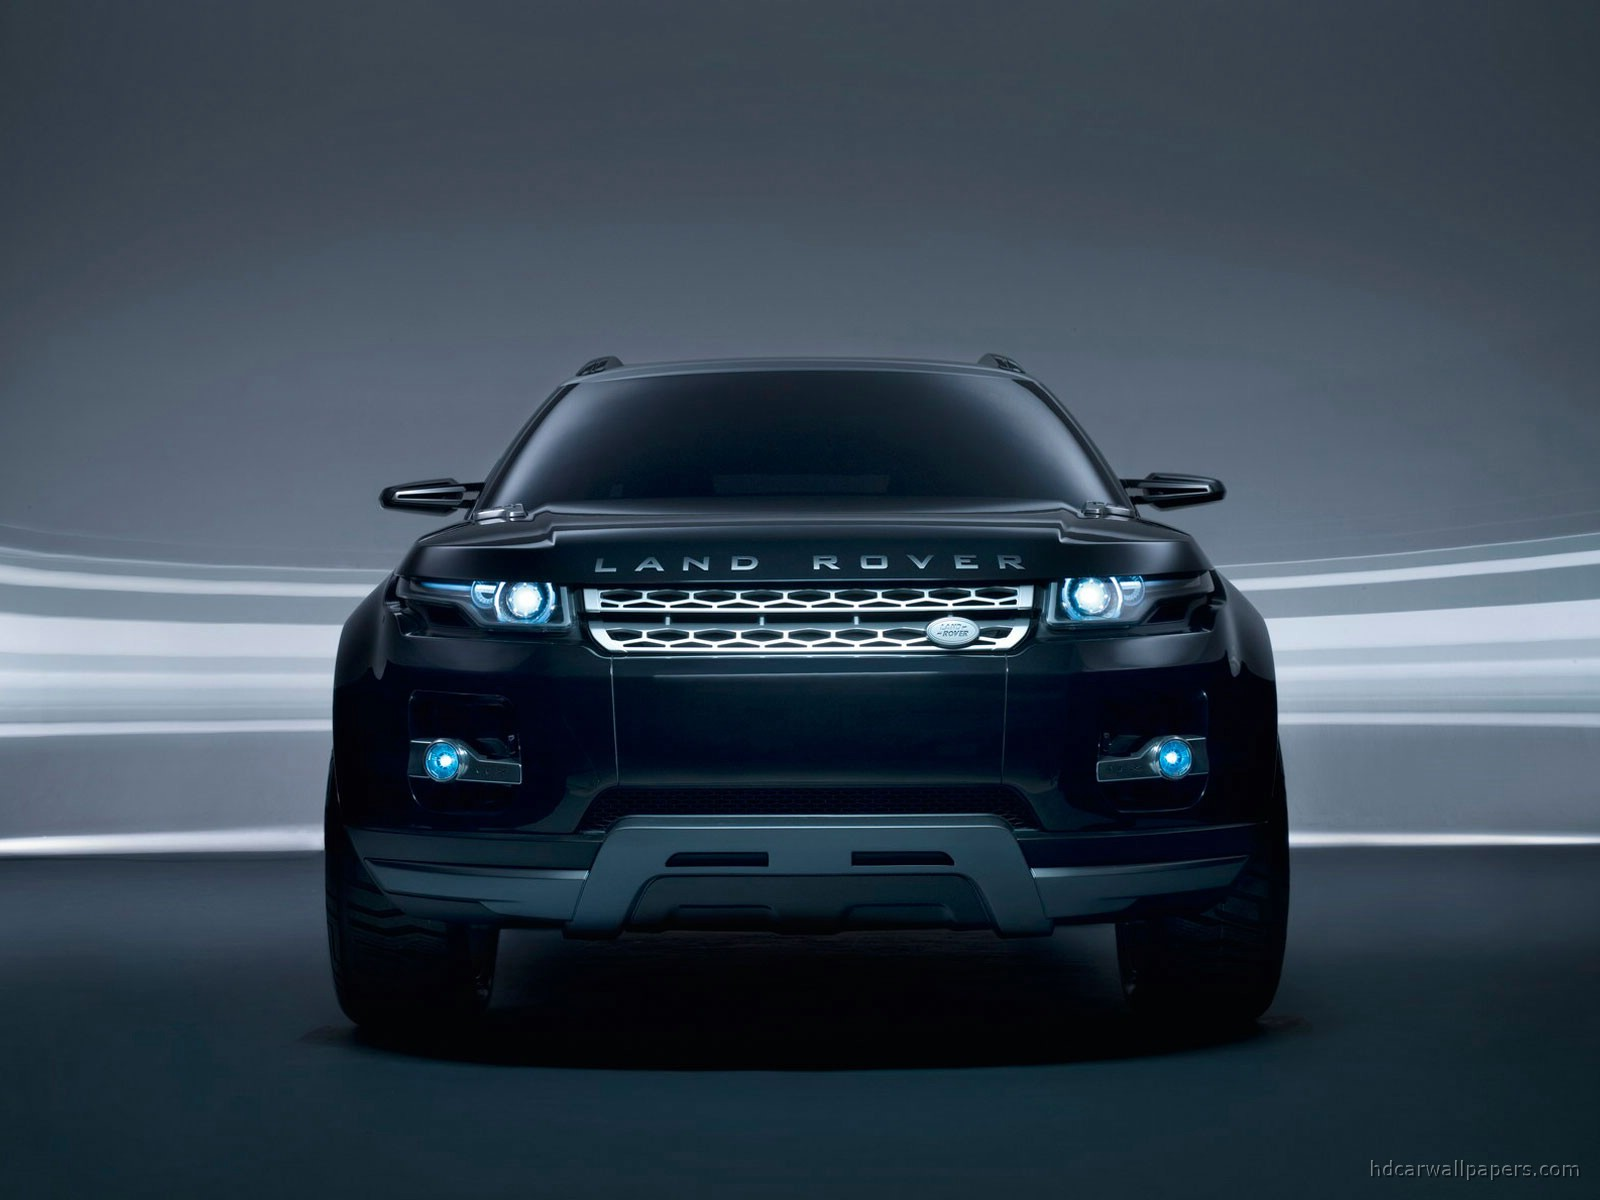 Amazing Land Rover Wallpaper